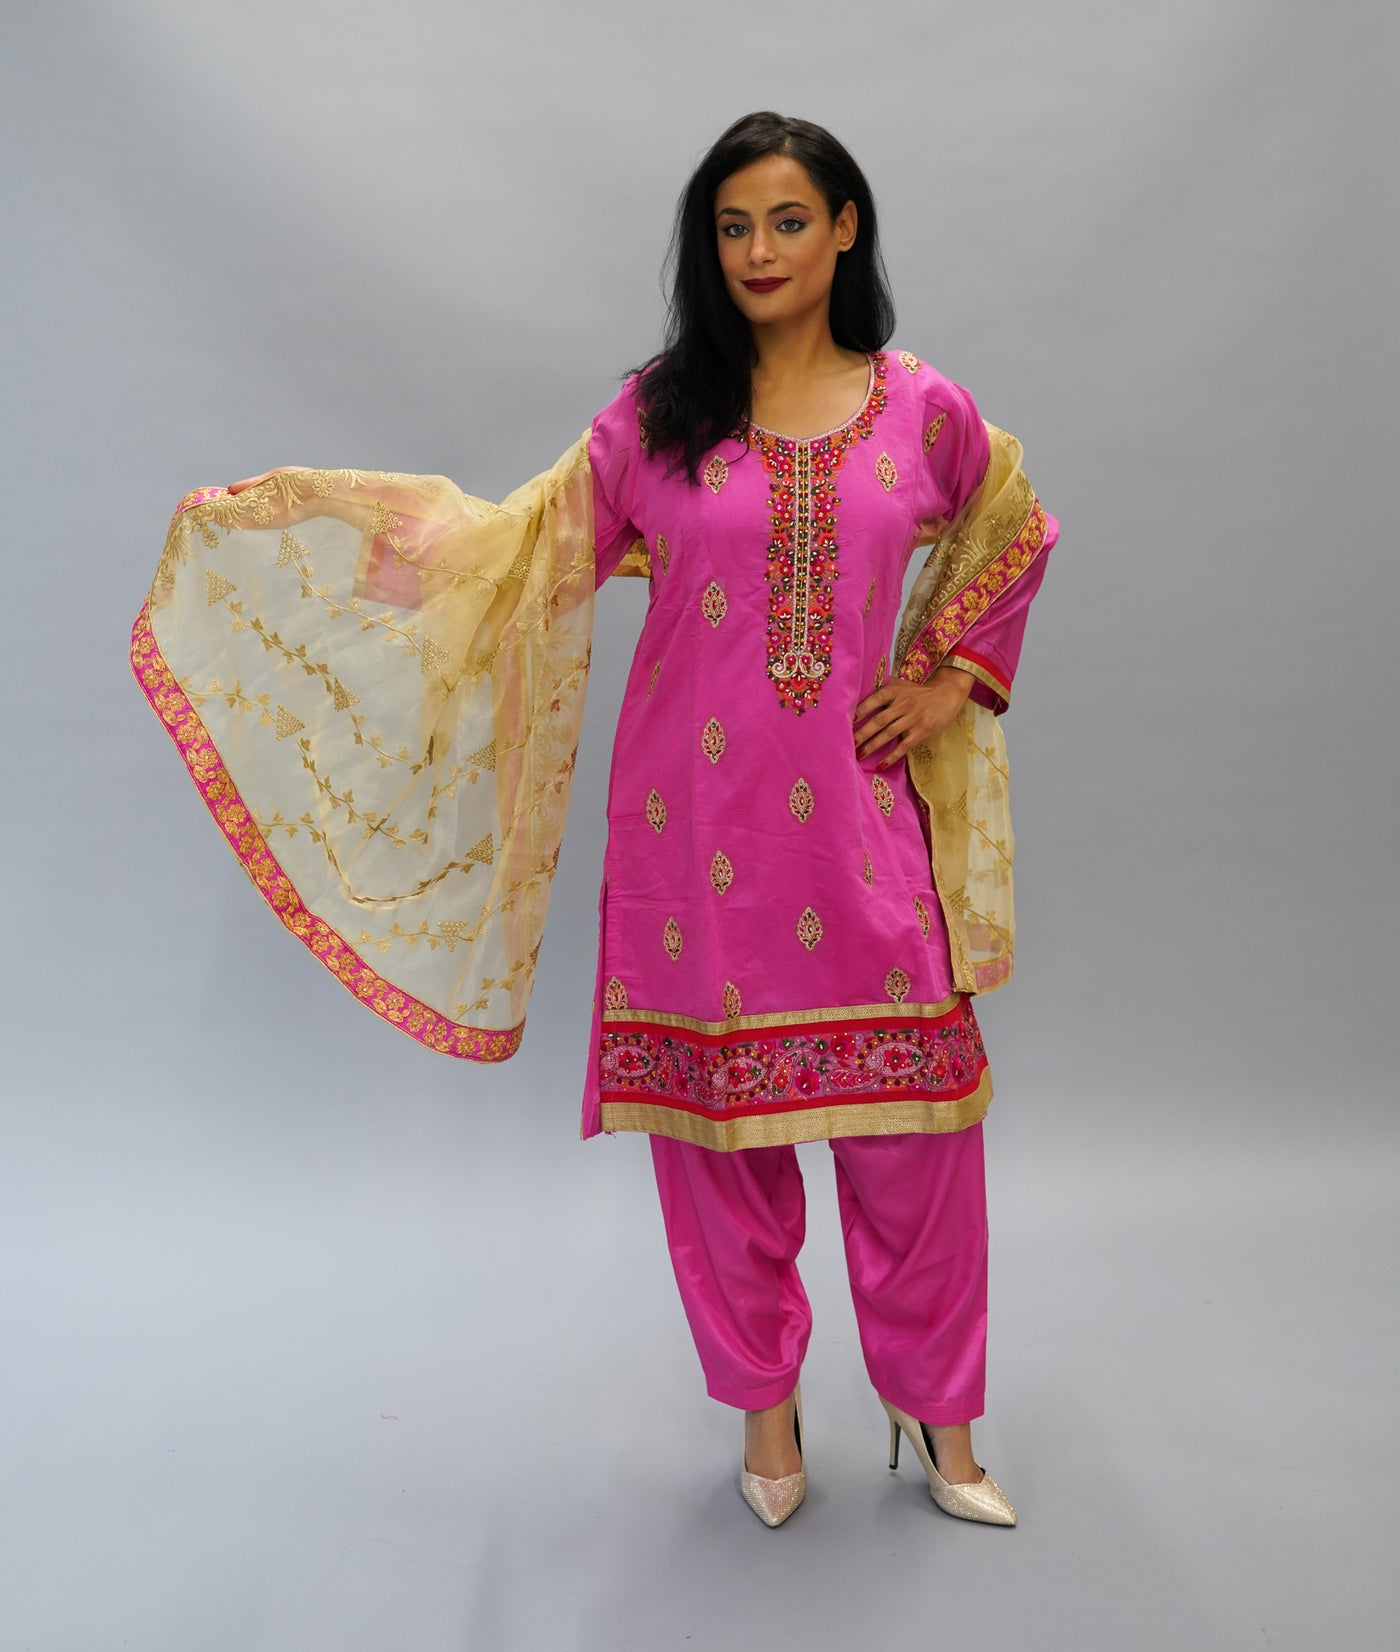 0167a2d713 Embroidered Silk Frosted Tulip Pink Salwar Suit – Heritage India ...